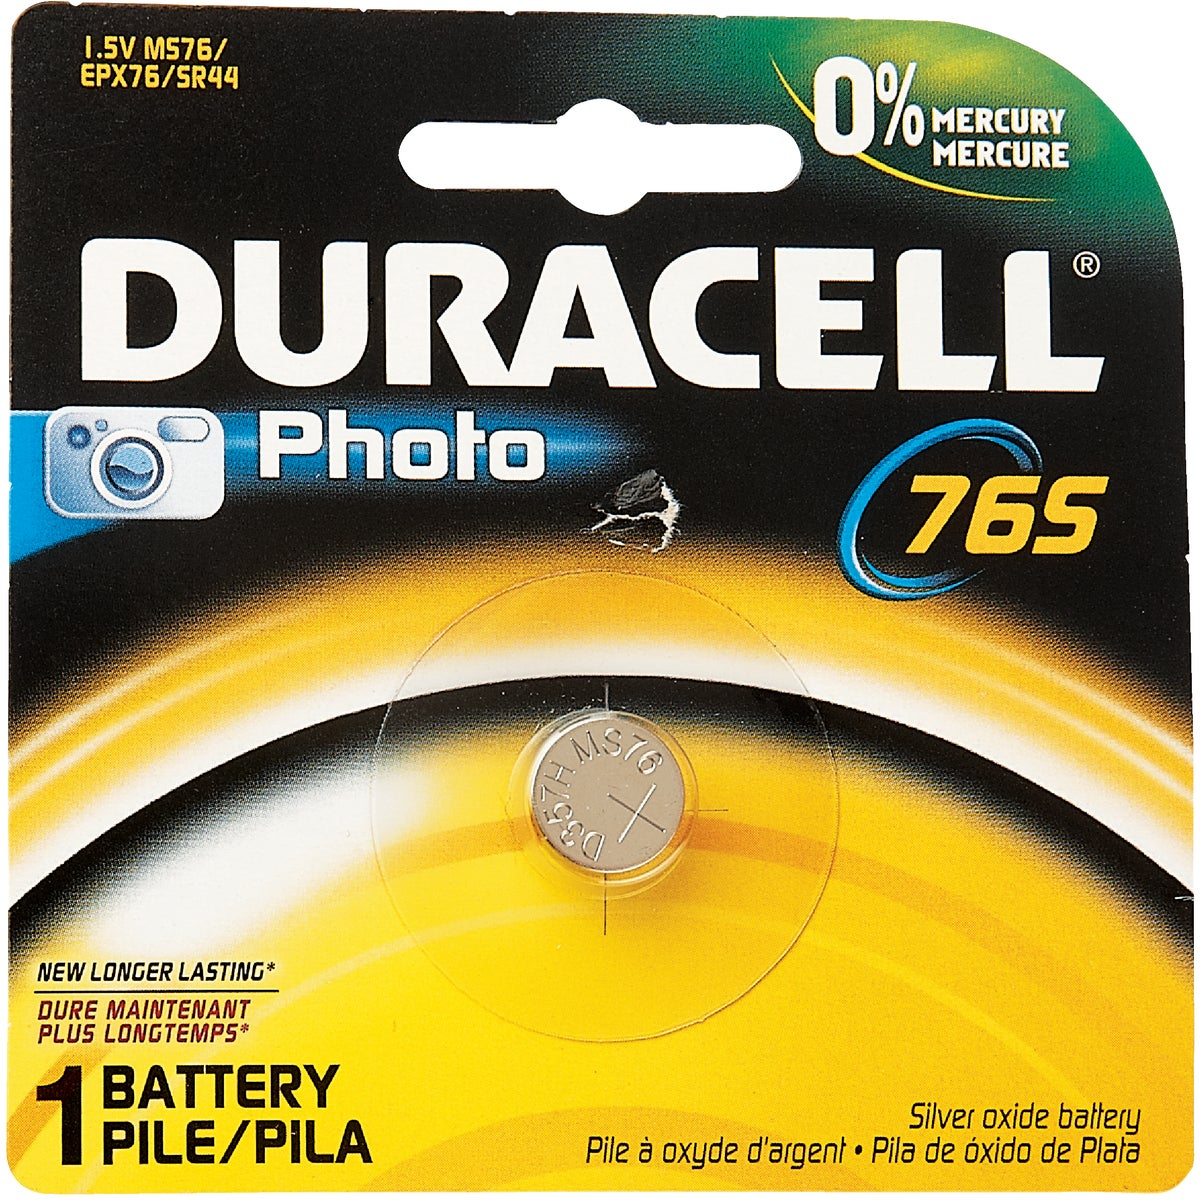 MS76 1.5V PHOTO BATTERY